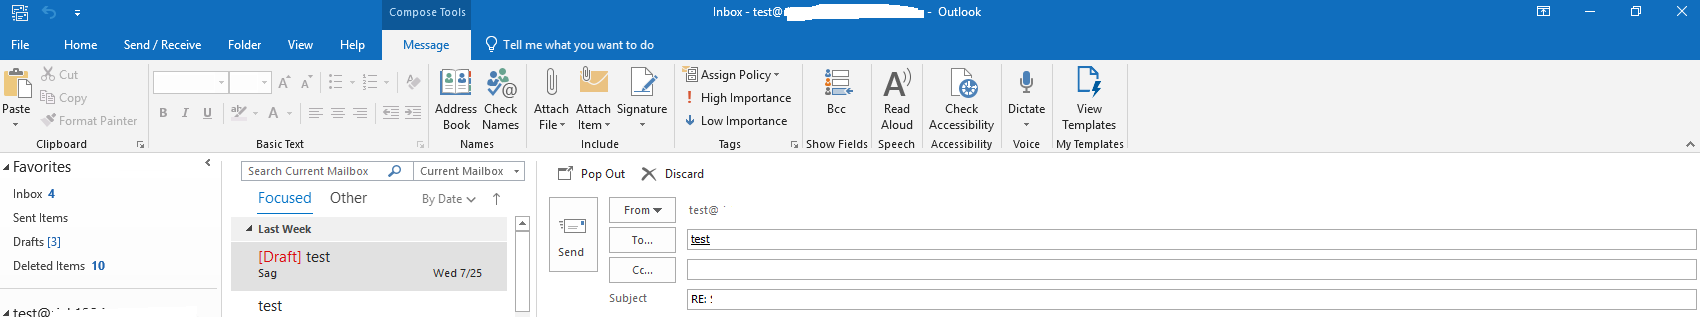 How can I add special symbols to outlook 365 - Microsoft Community